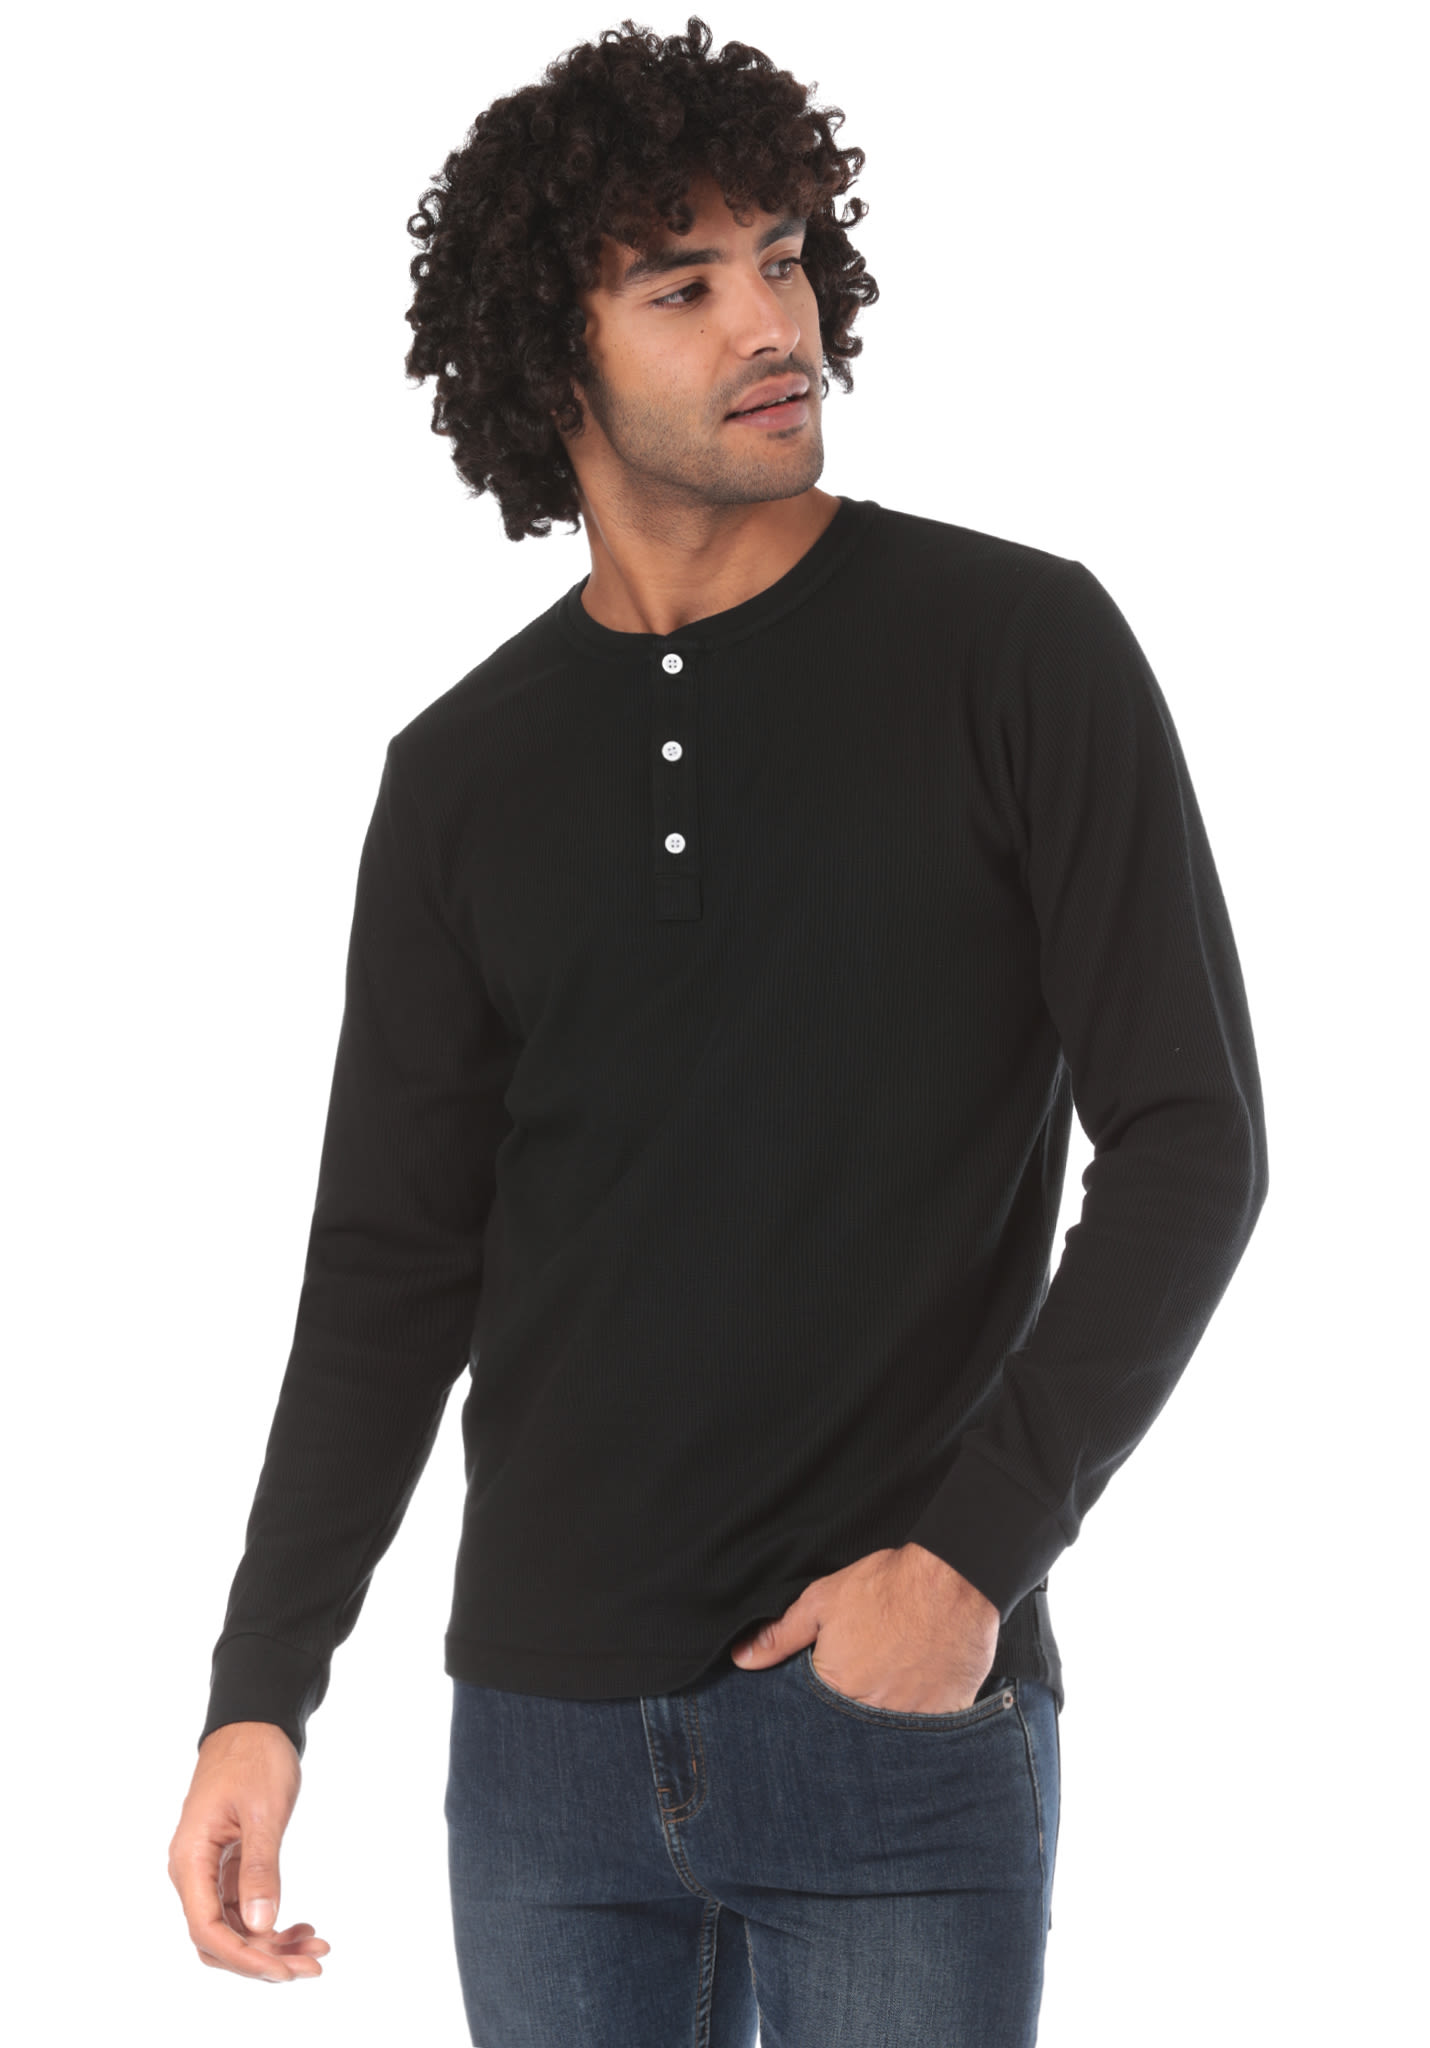 quality design really comfortable another chance NIKE SB Top Thermal Henley - Long-sleeved Shirt for Men - Black